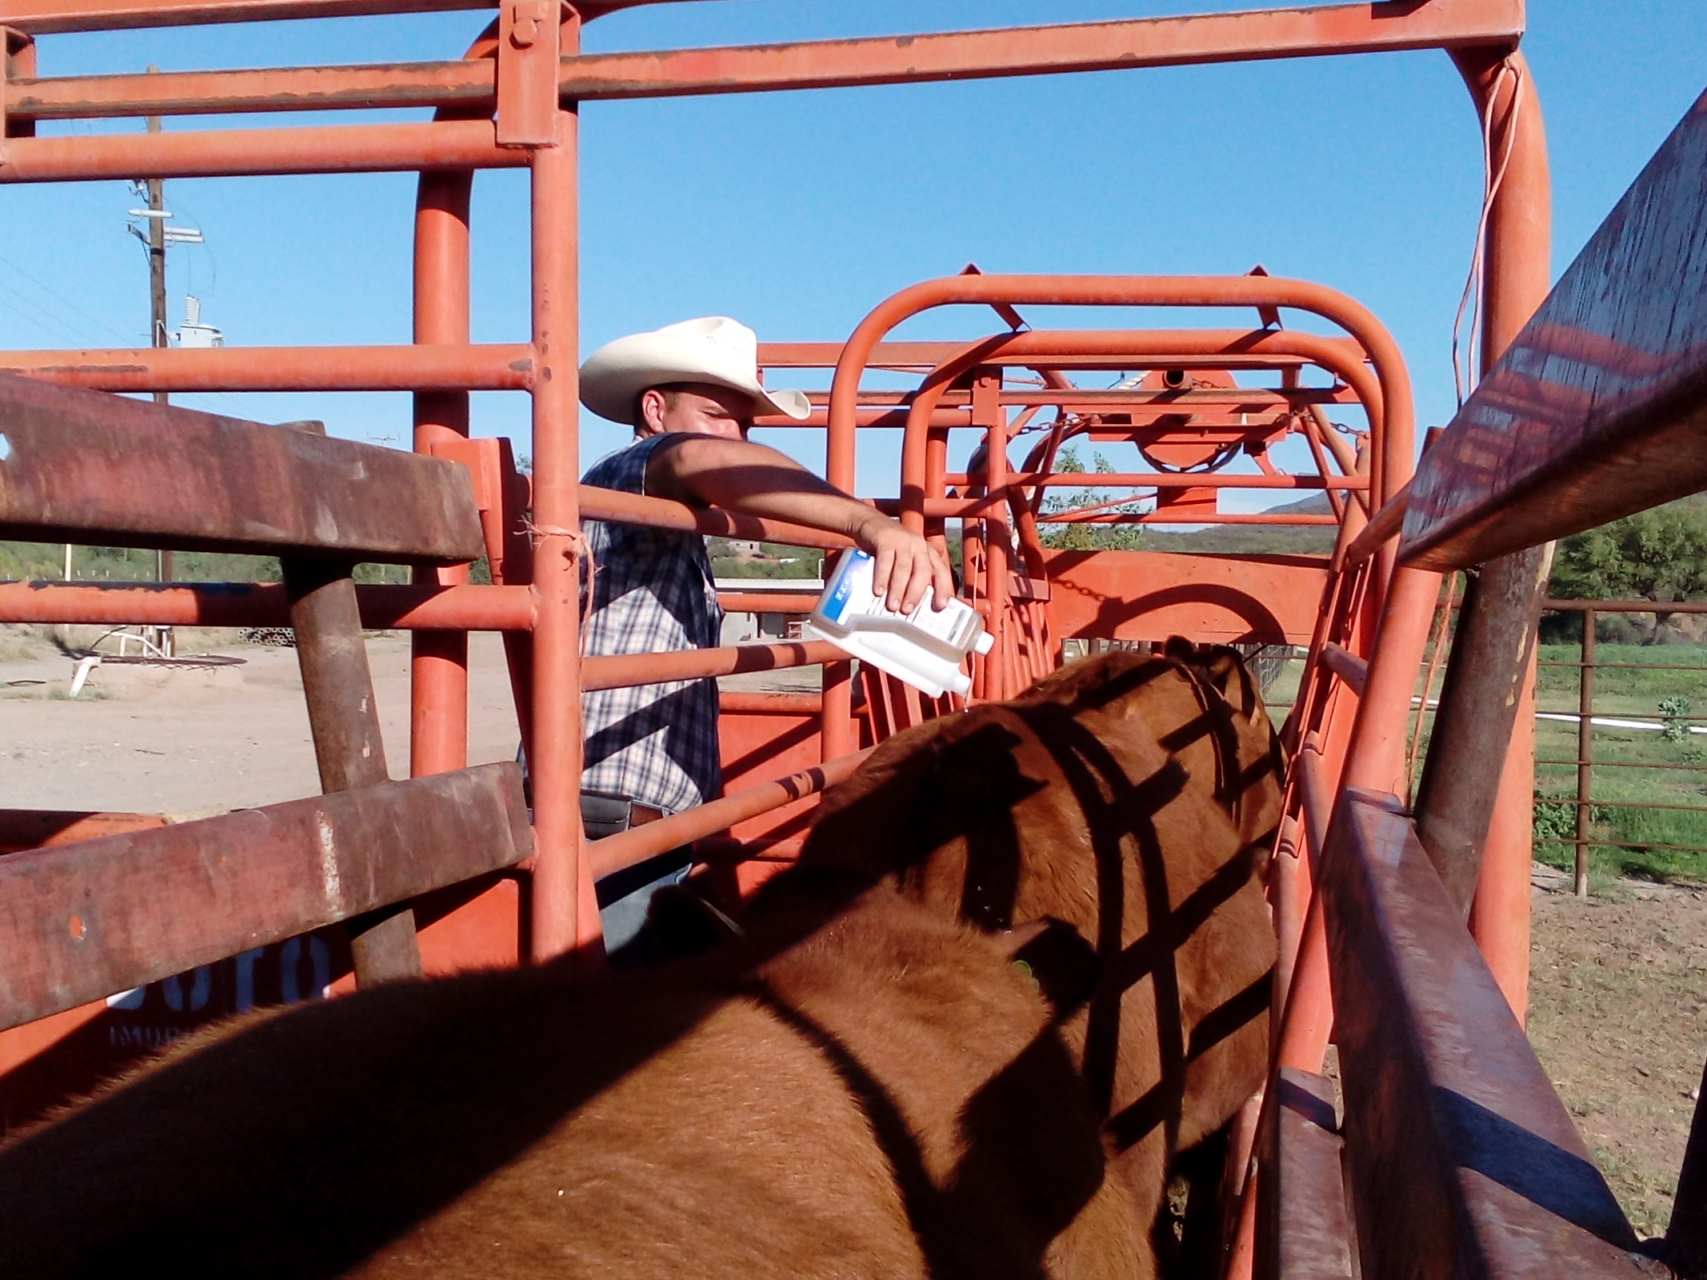 The cattle are run through the chute and poured-on for flies.